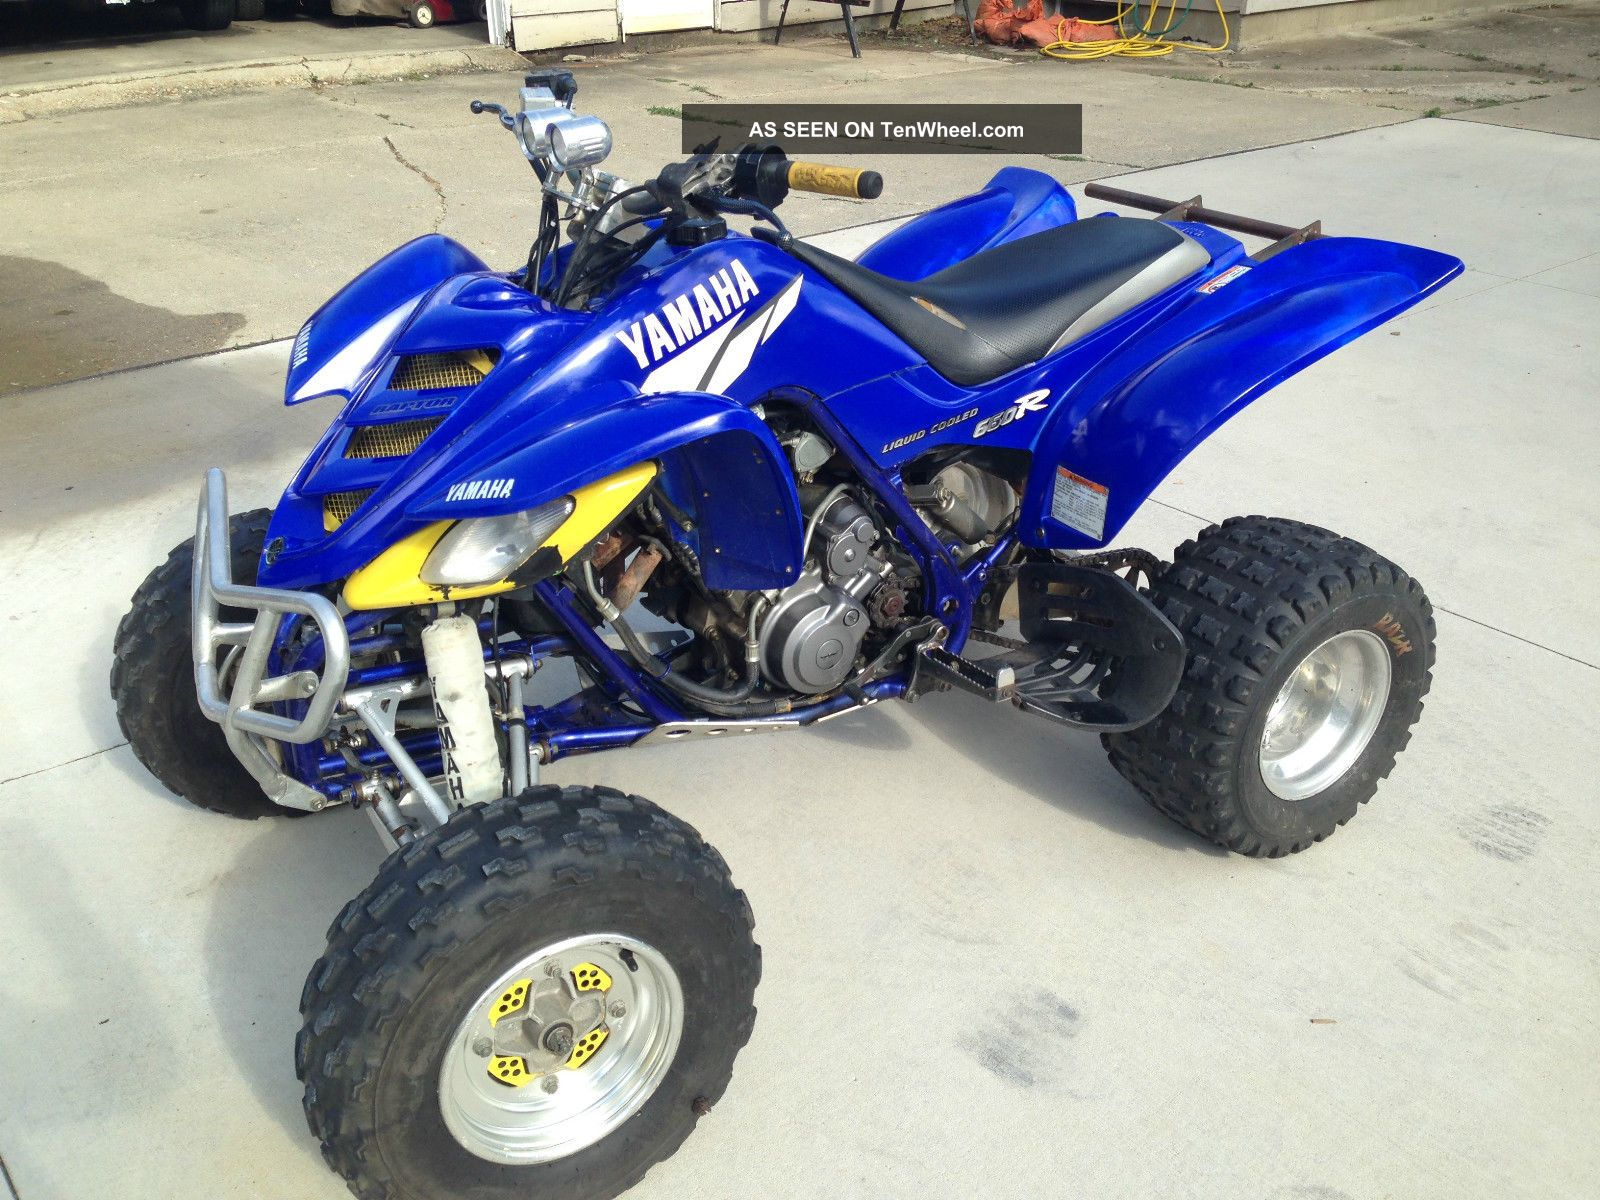 2002 Yamaha Raptor 660r Yamaha photo